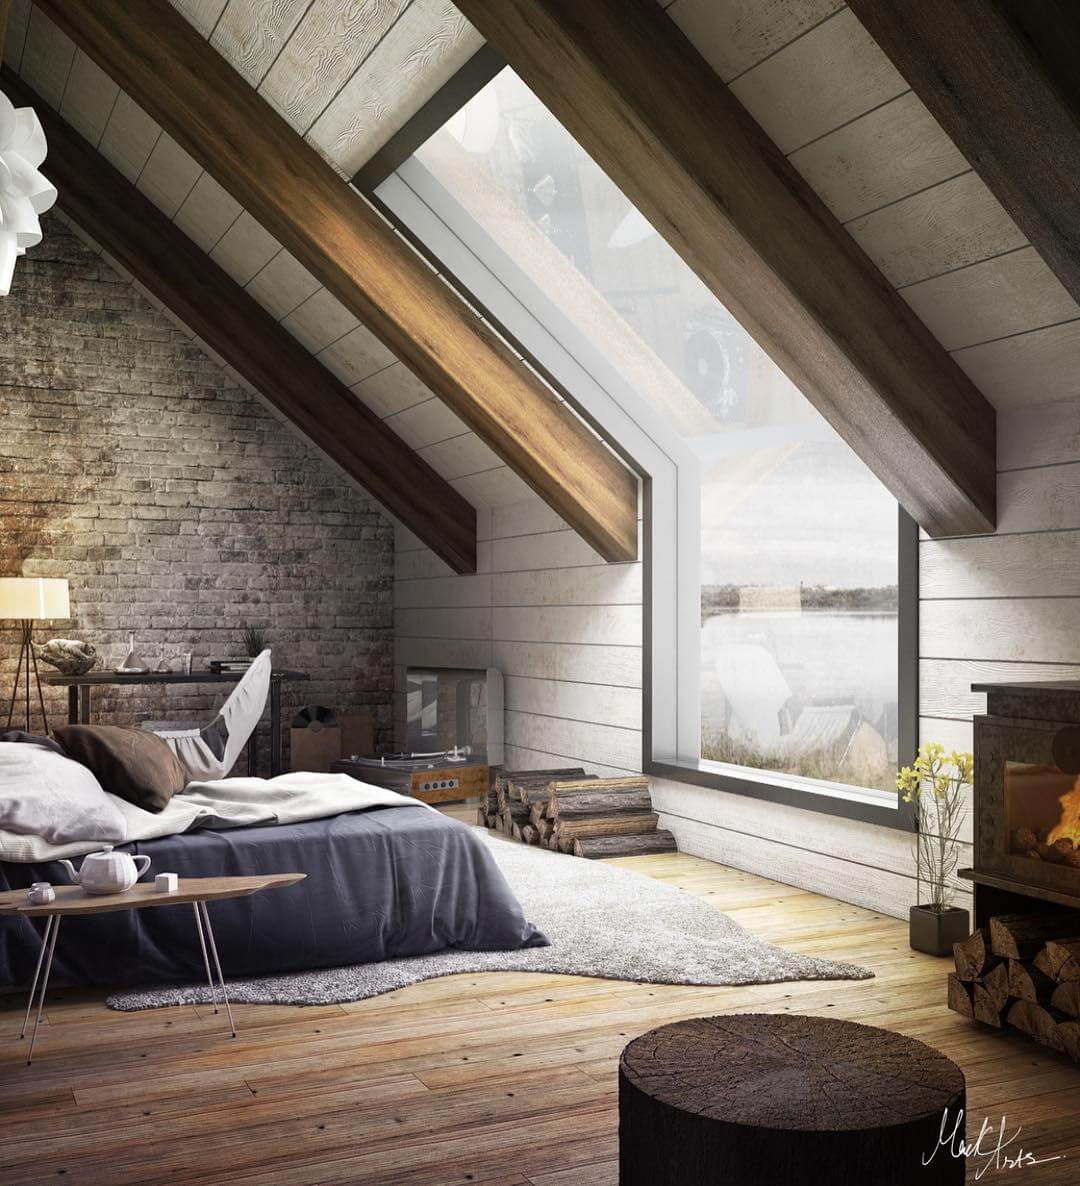 17 Clever Use Of Attic Room Design And Remodel Ideas Attic Bedroom Decor Bedroom Design Minimalism Interior